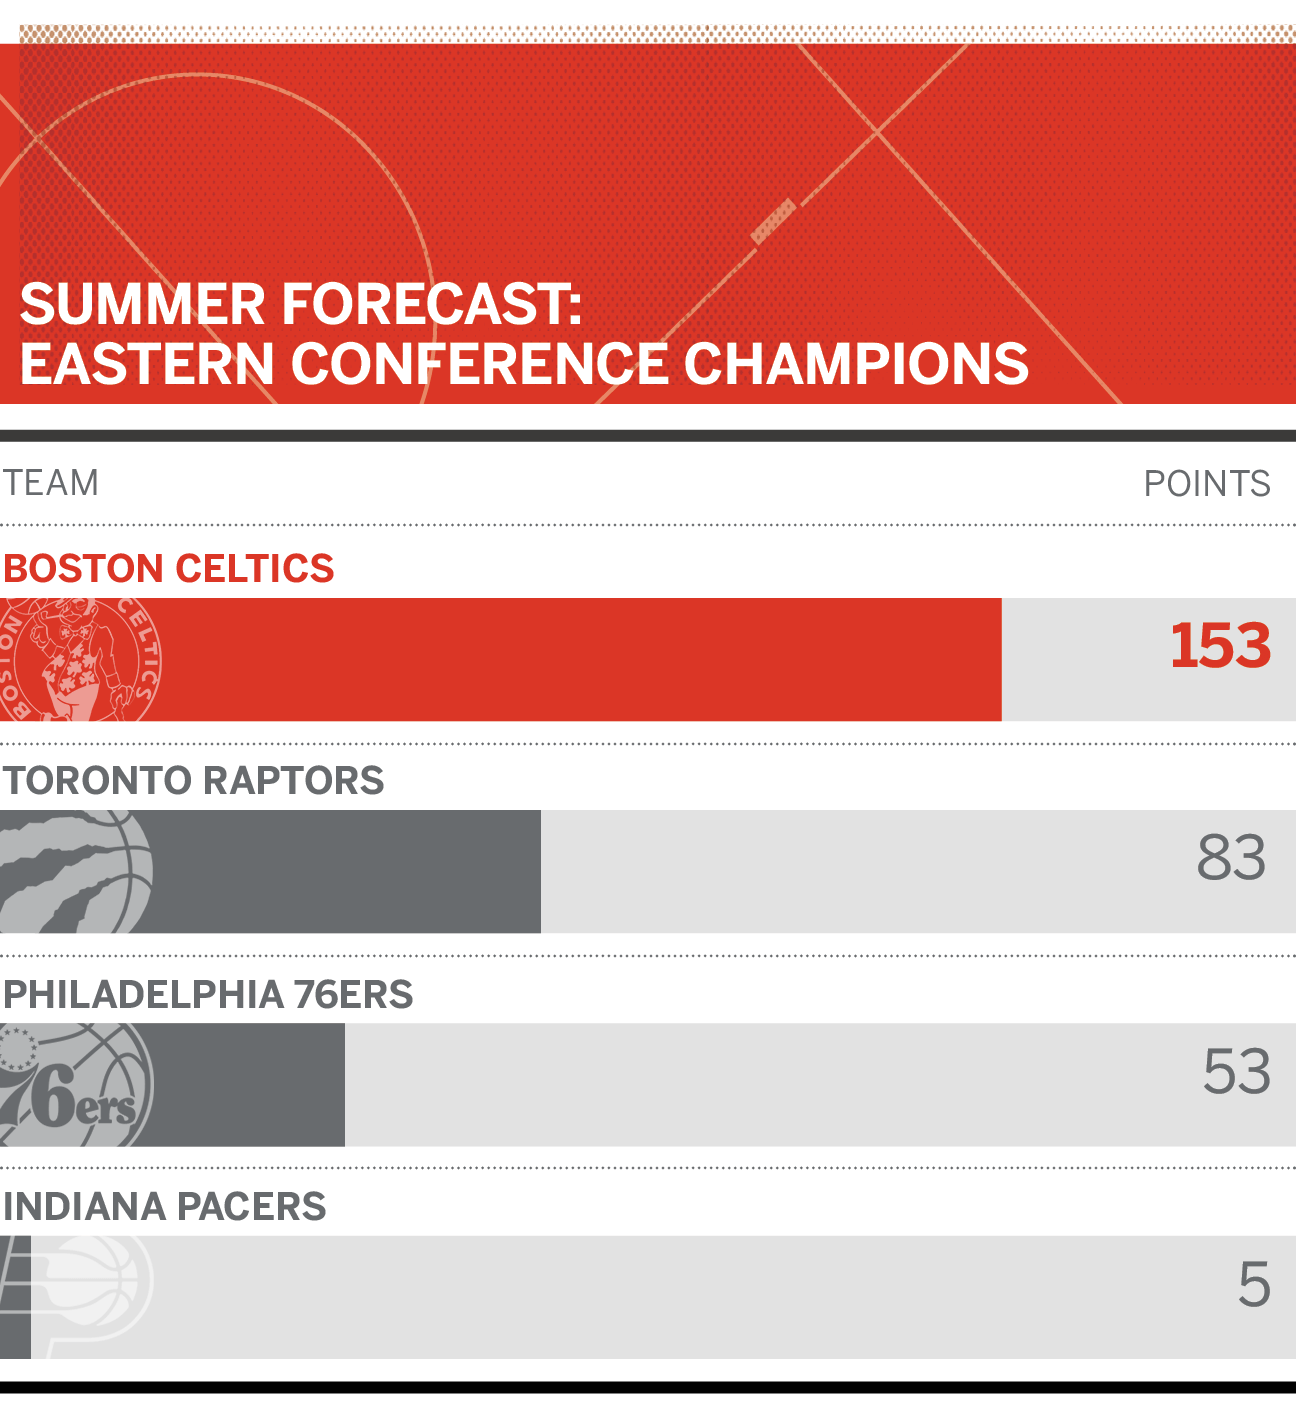 Summer Forecast: East, West And NBA Champs In 2018-19